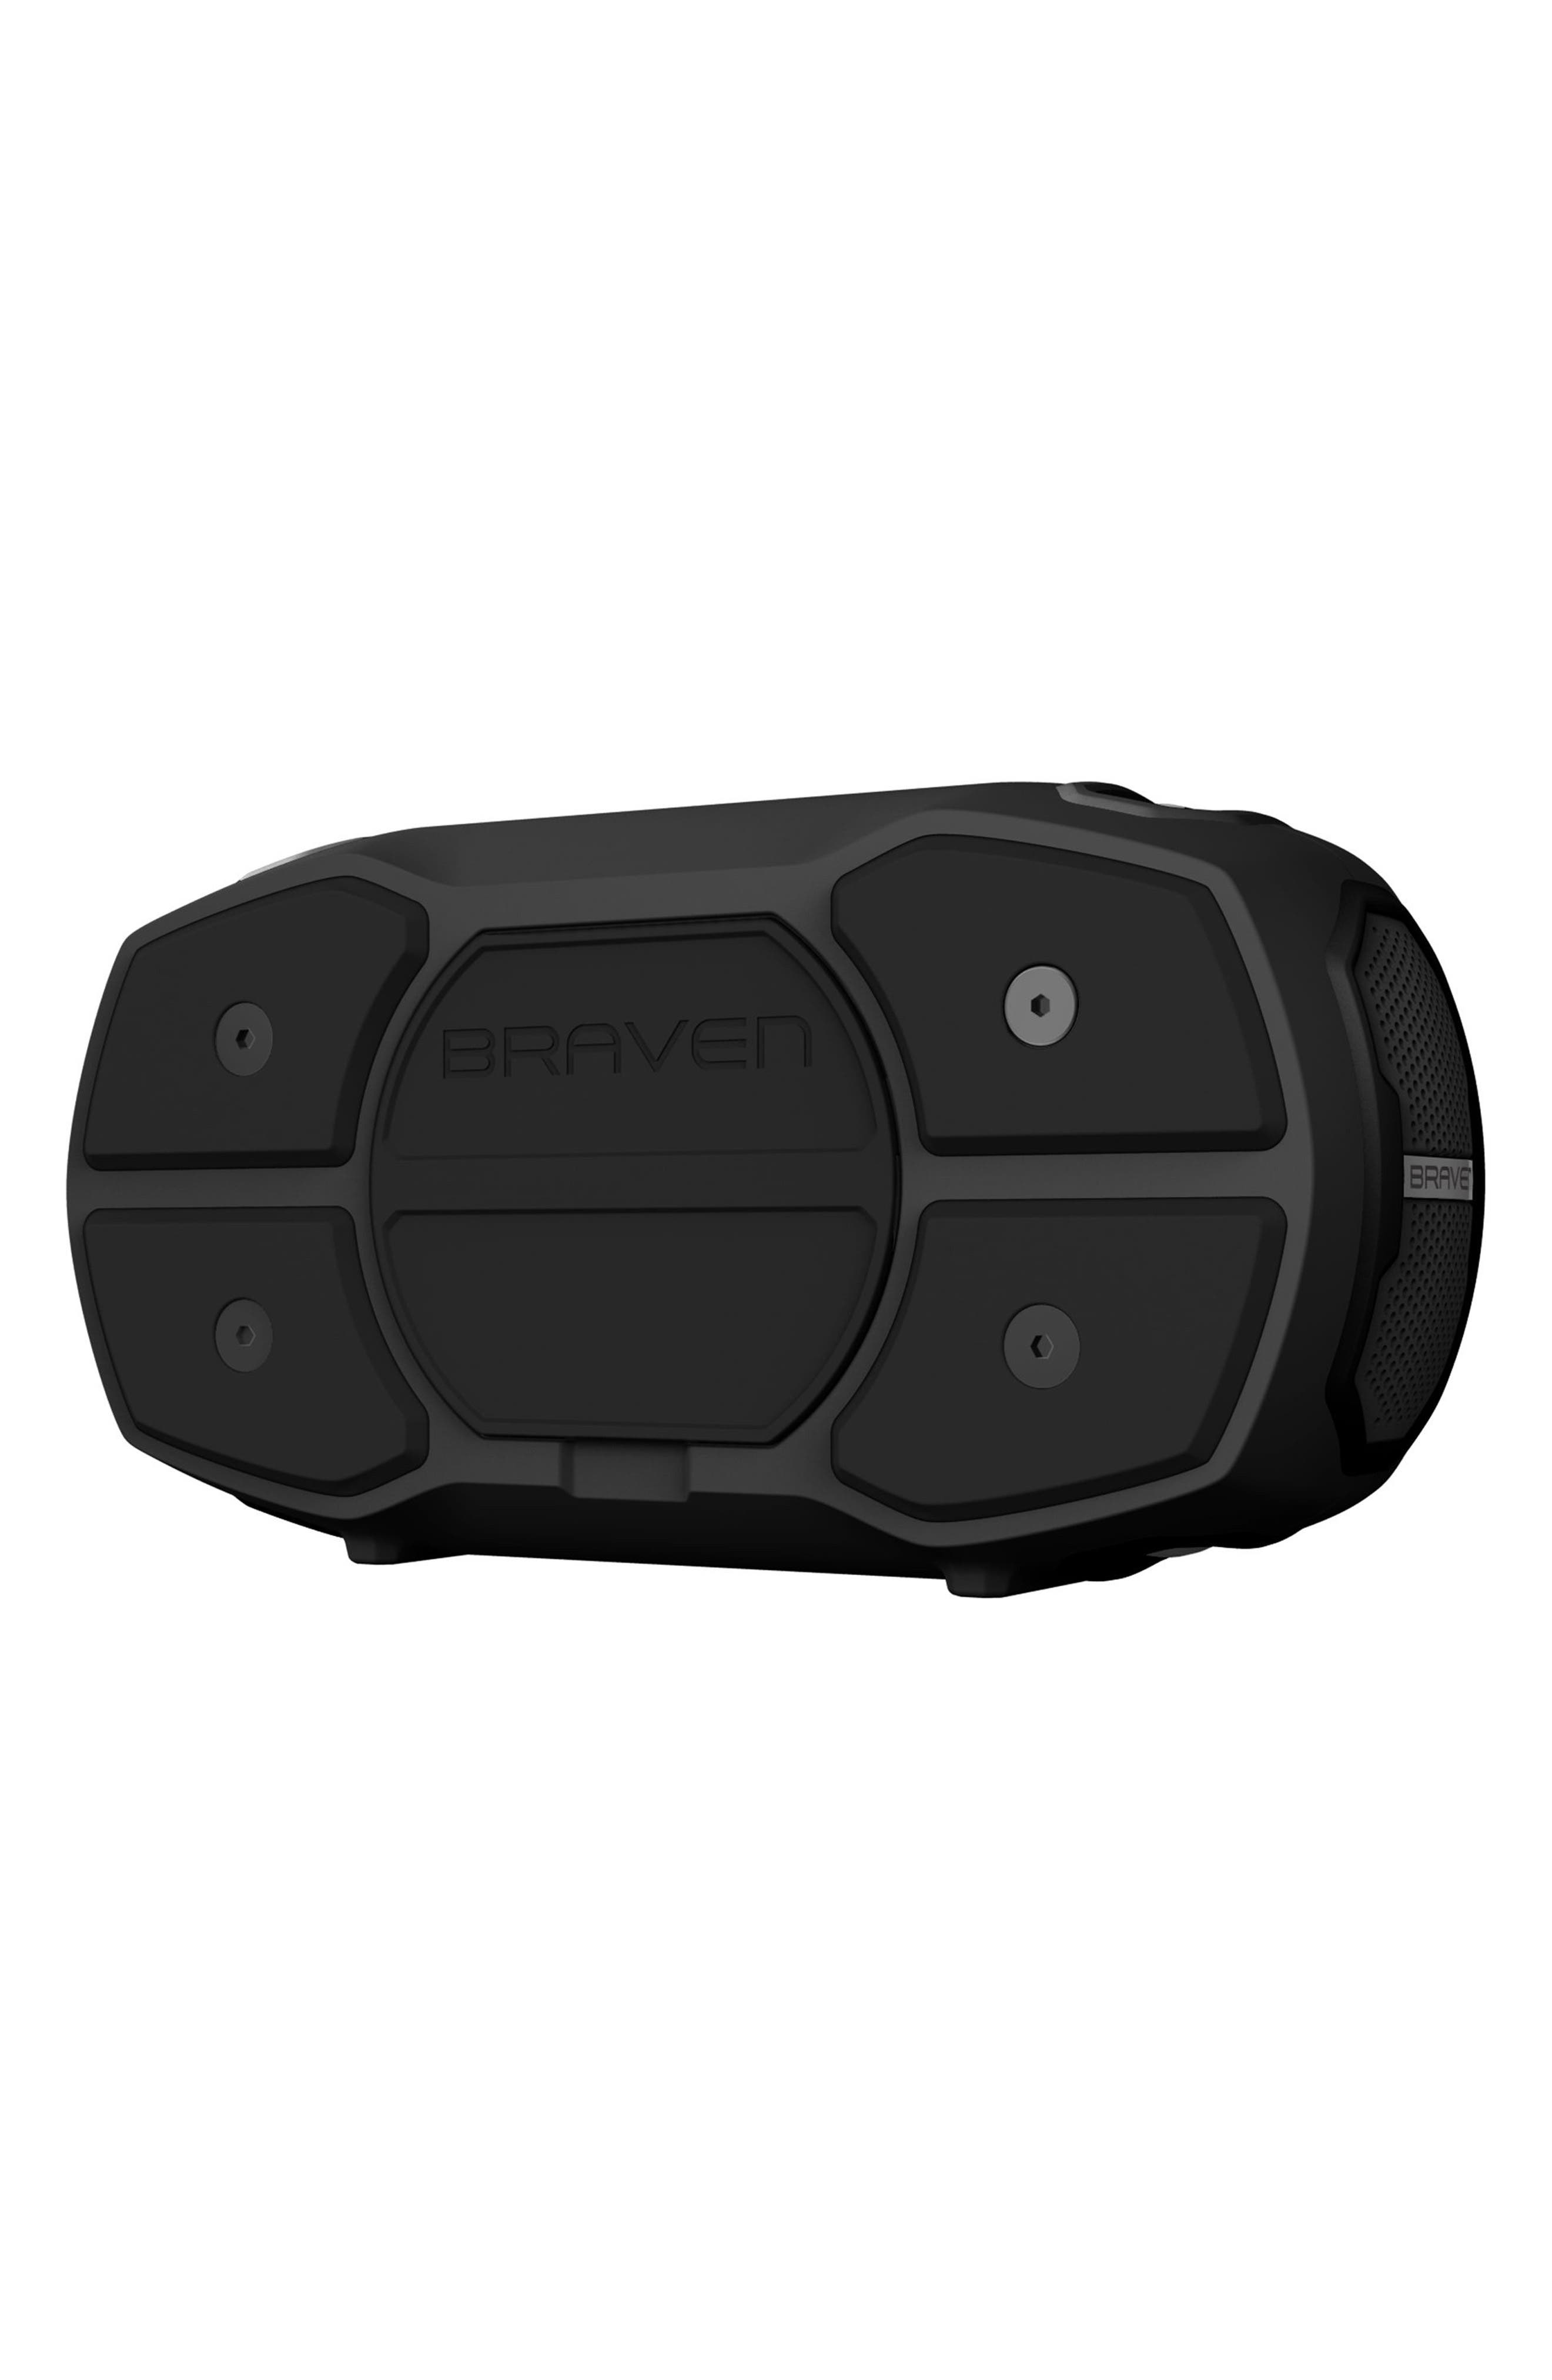 Ready Elite Bluetooth<sup>®</sup> Speaker,                             Alternate thumbnail 3, color,                             Black/ Titanium